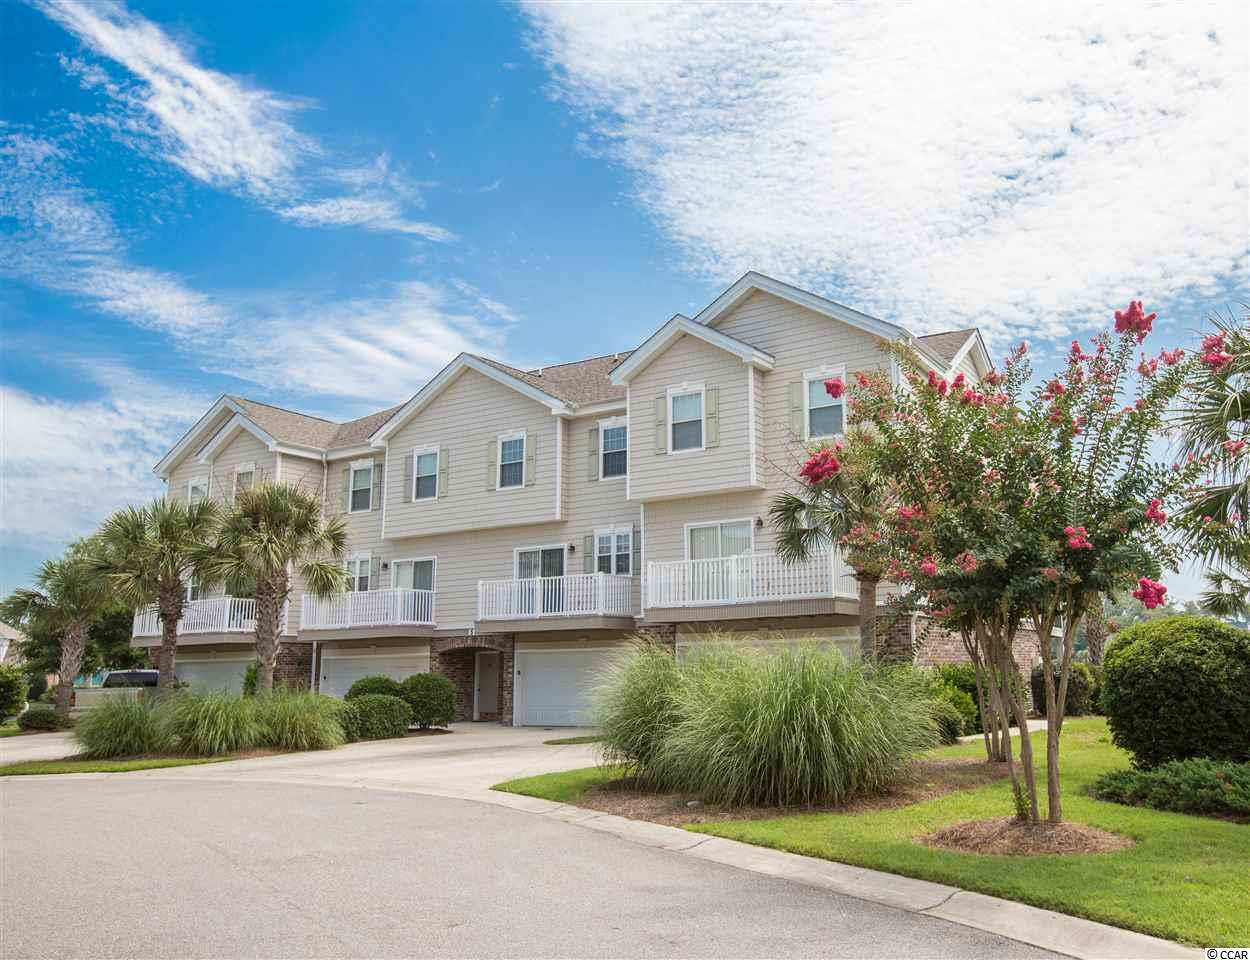 Townhouse MLS:1809215 OCEAN KEYES  601 Hillside Dr. N. #1303 North Myrtle Beach SC